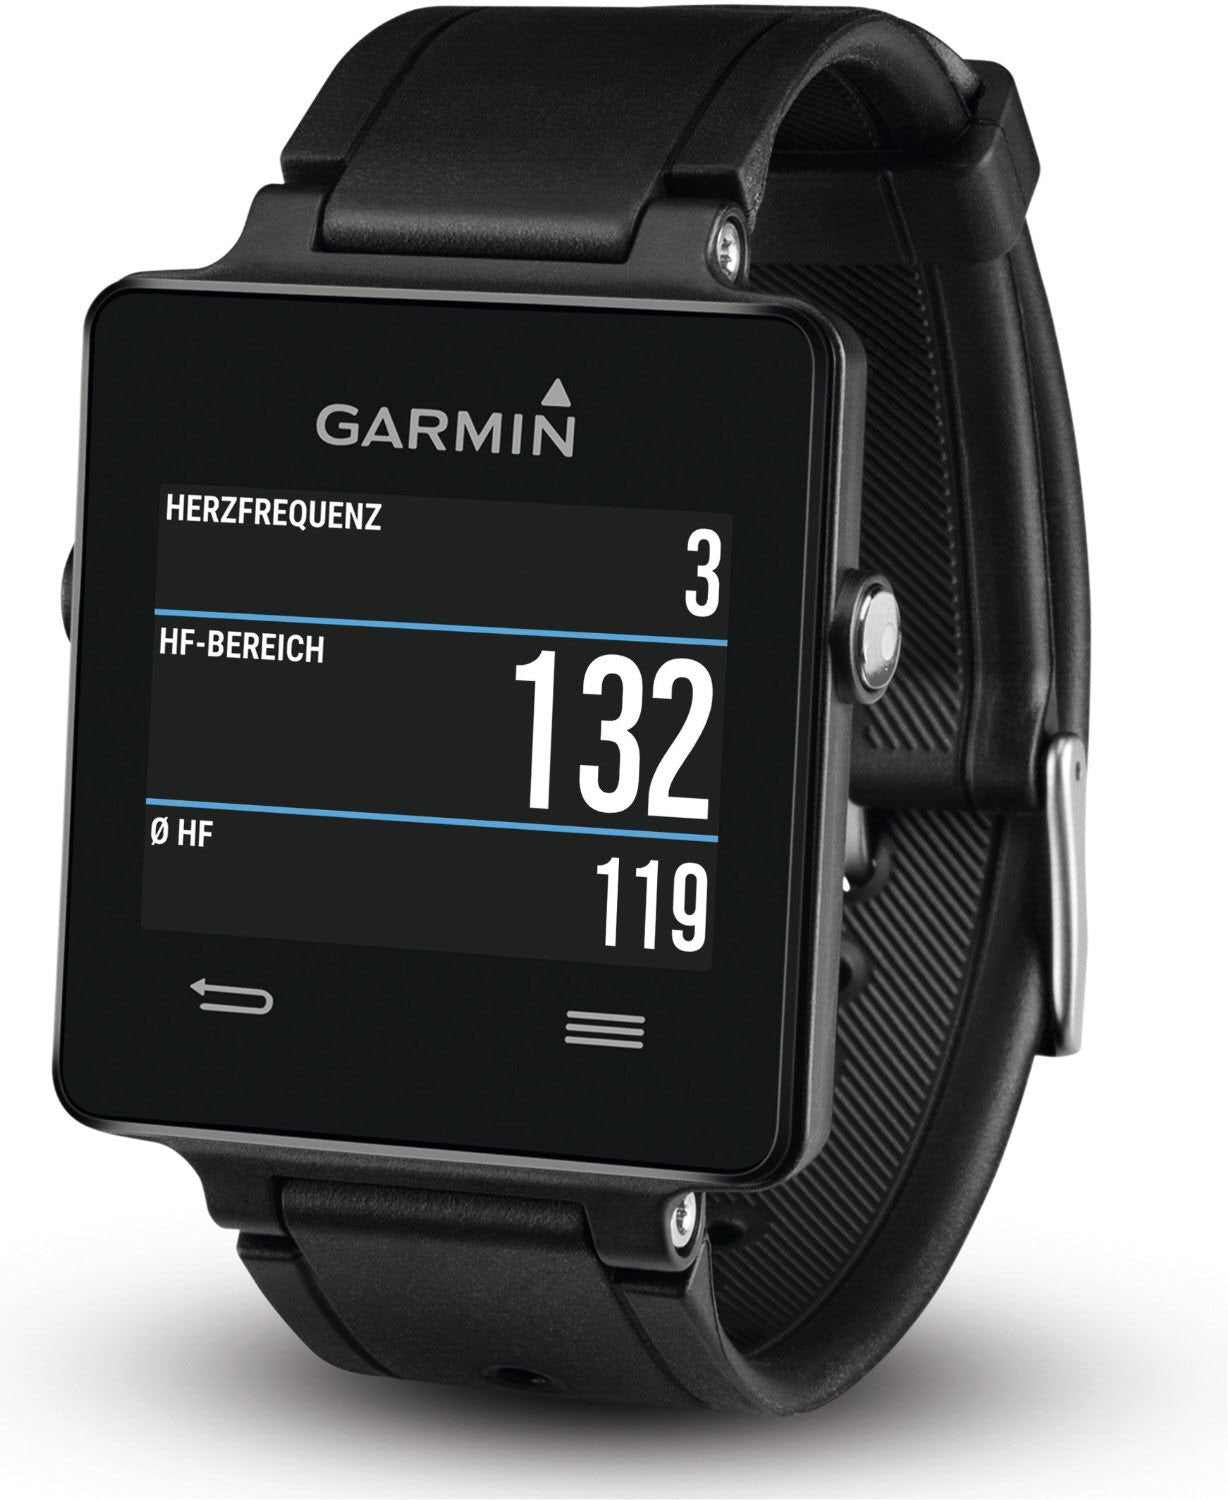 Garmin Watch Viviactive Black